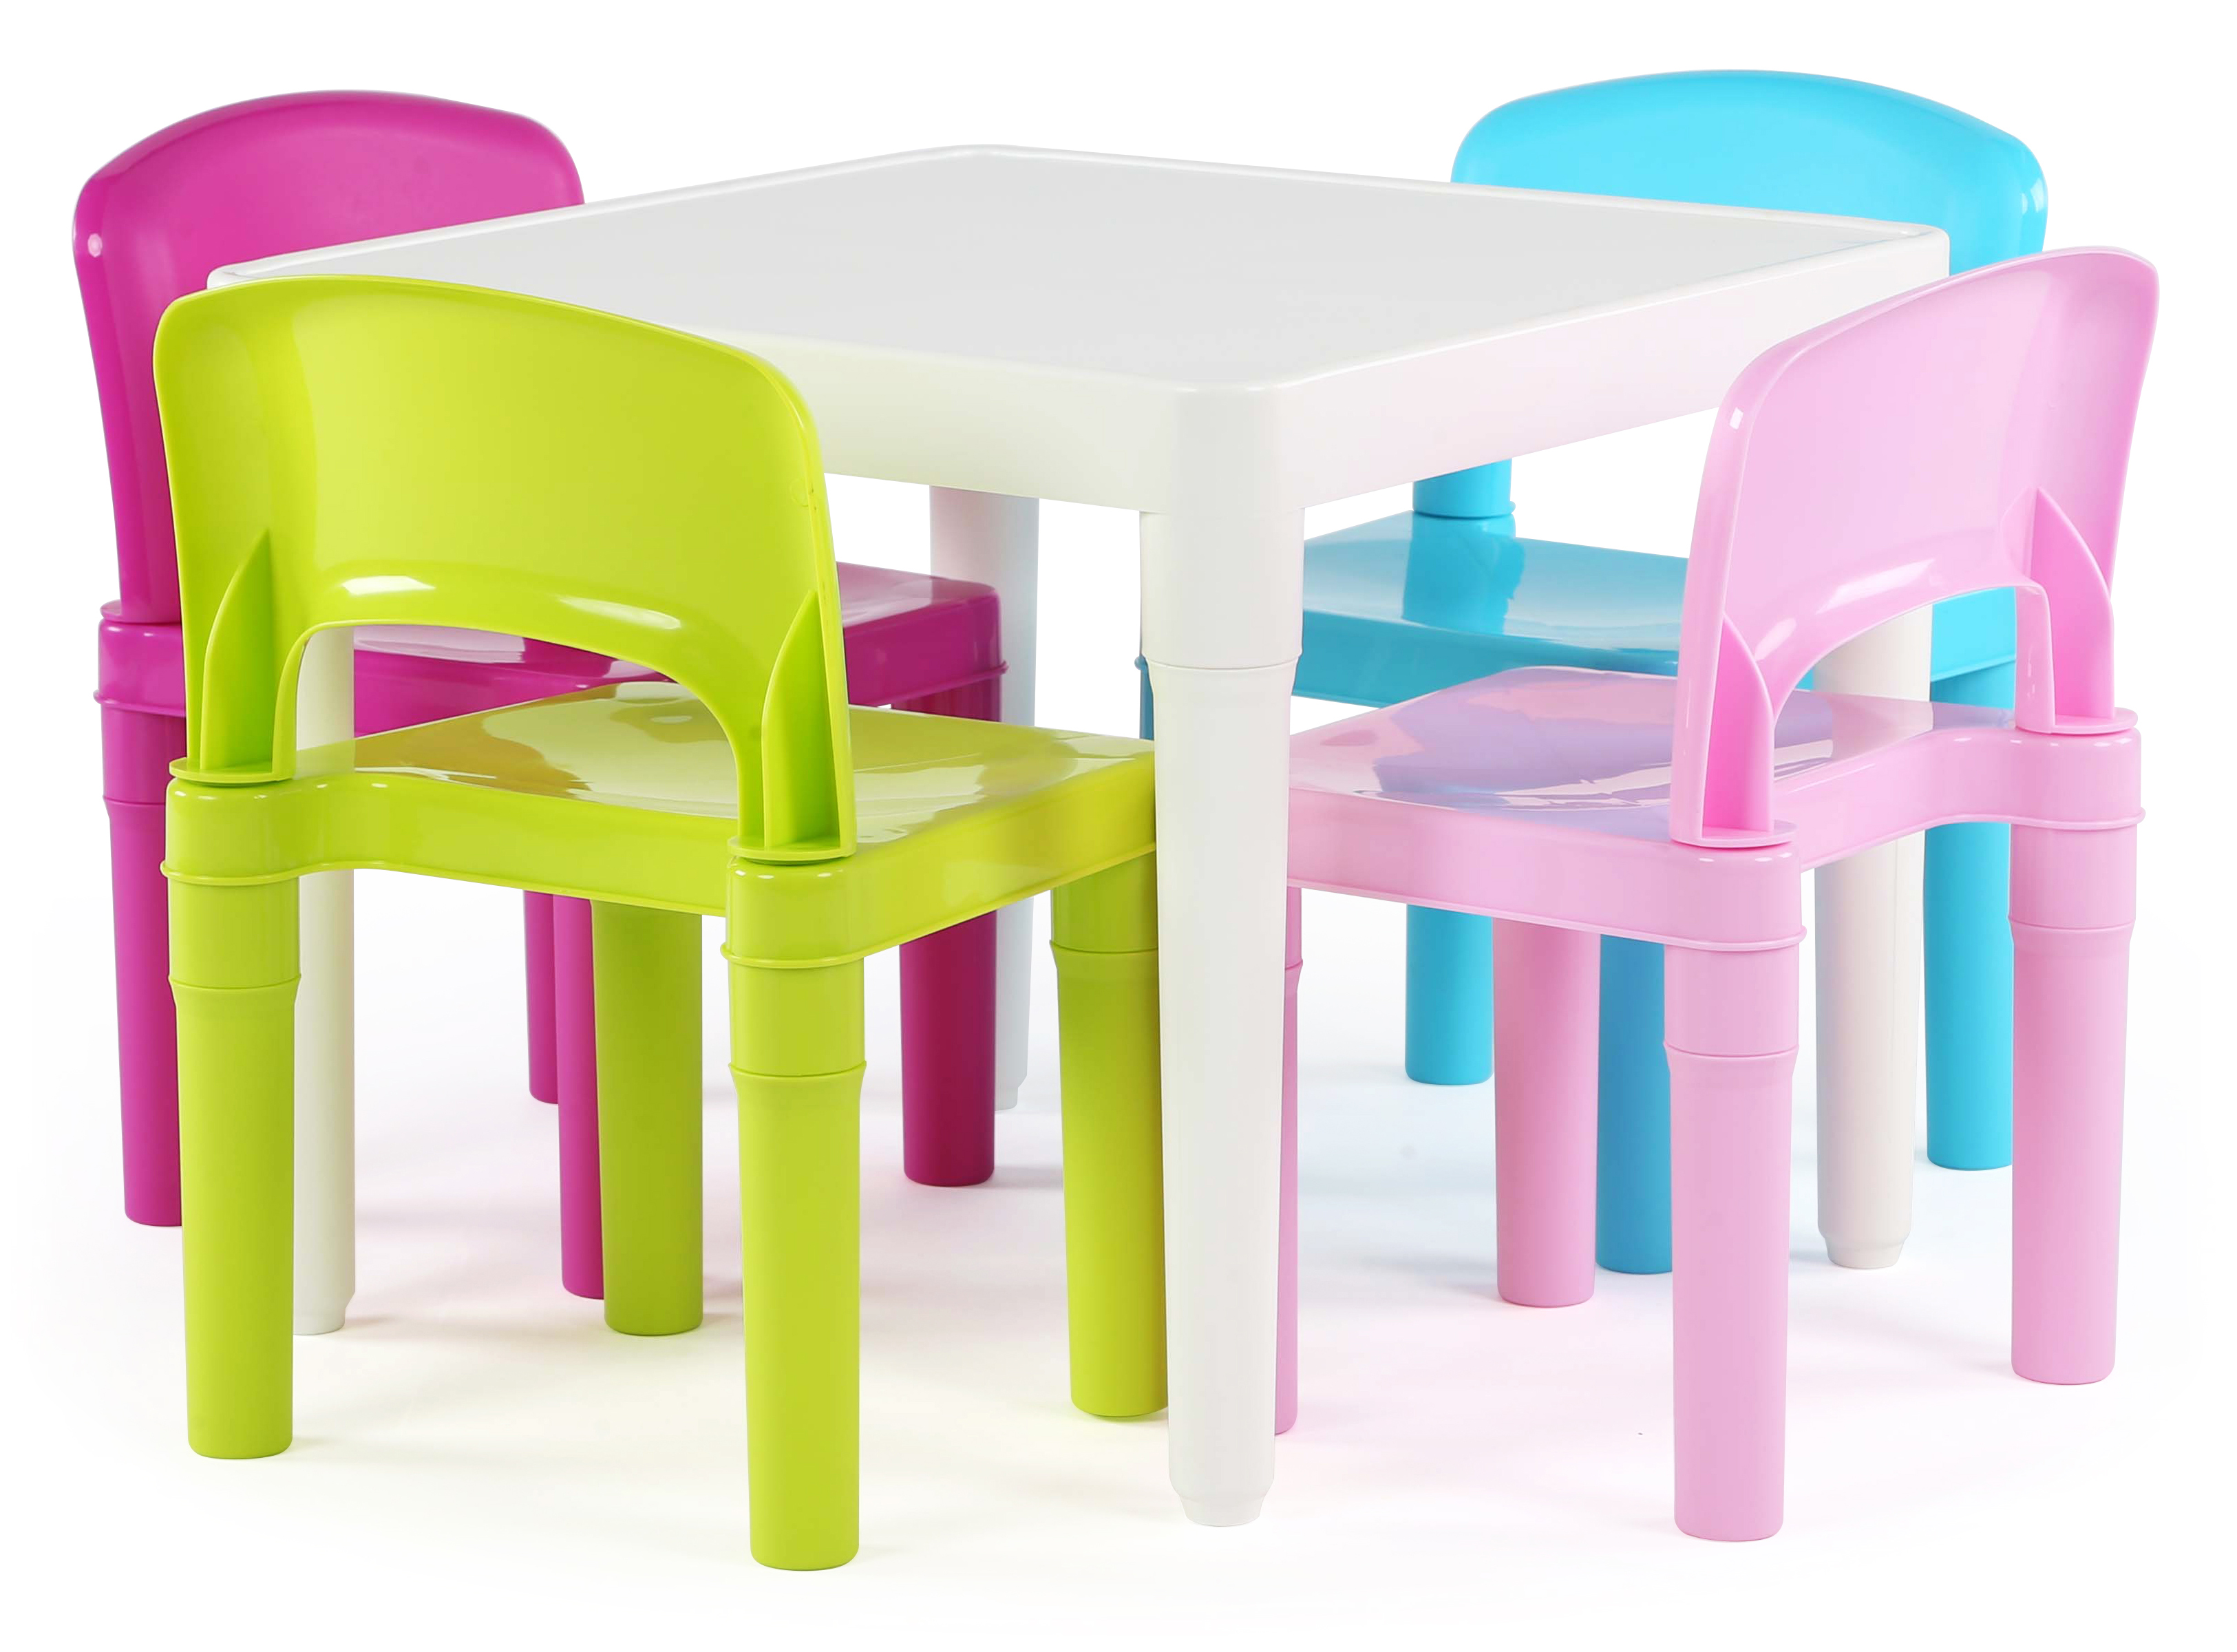 Toys R Us Kids Chairs Tot Tutors Kids Plastic Table And 4 Chairs Set Bright Colors